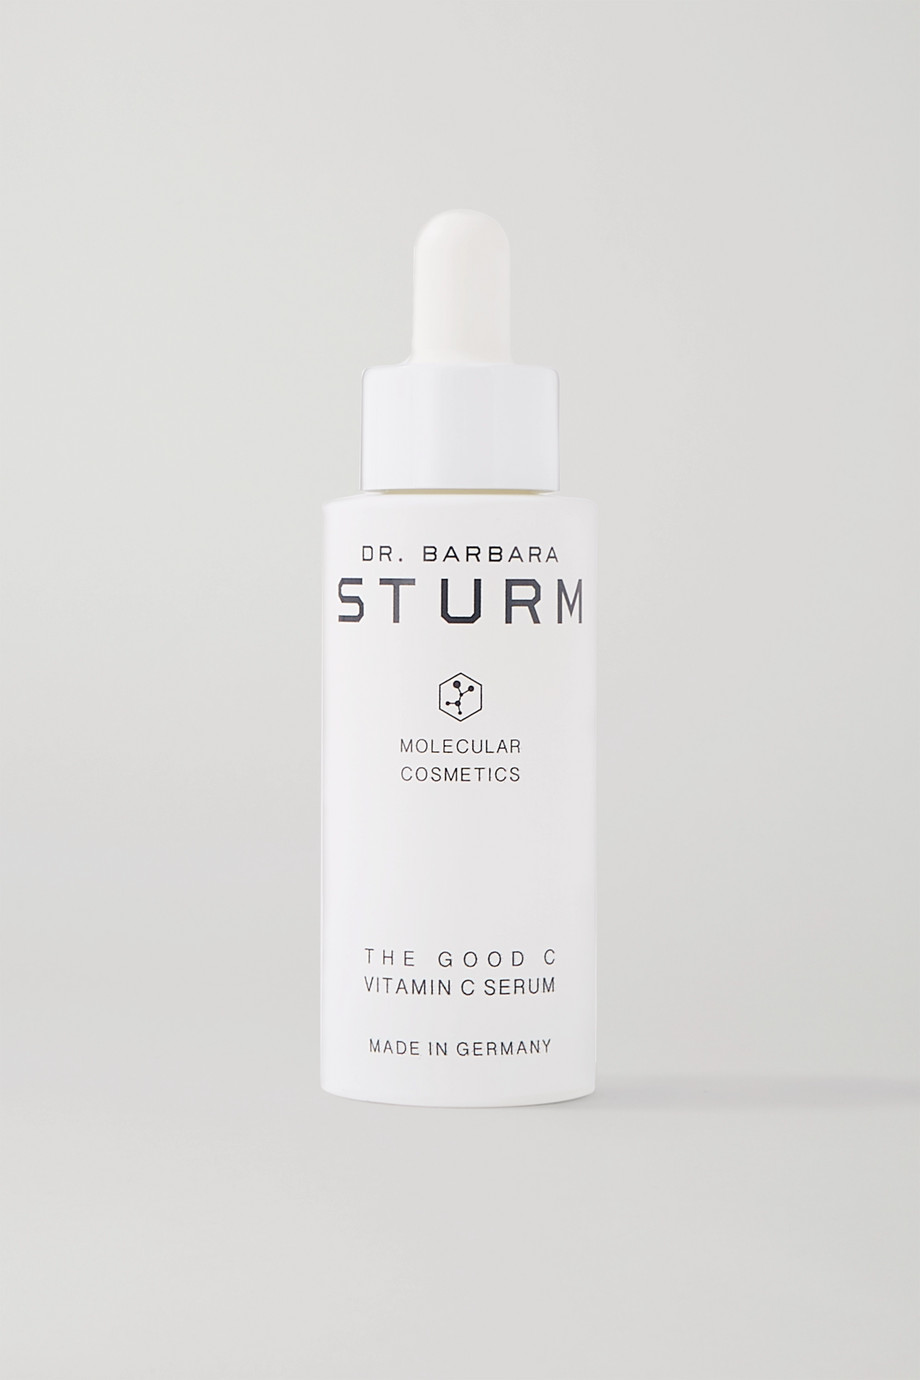 DR. BARBARA STURM The Good C  - Vitamin C Serum, 30ml